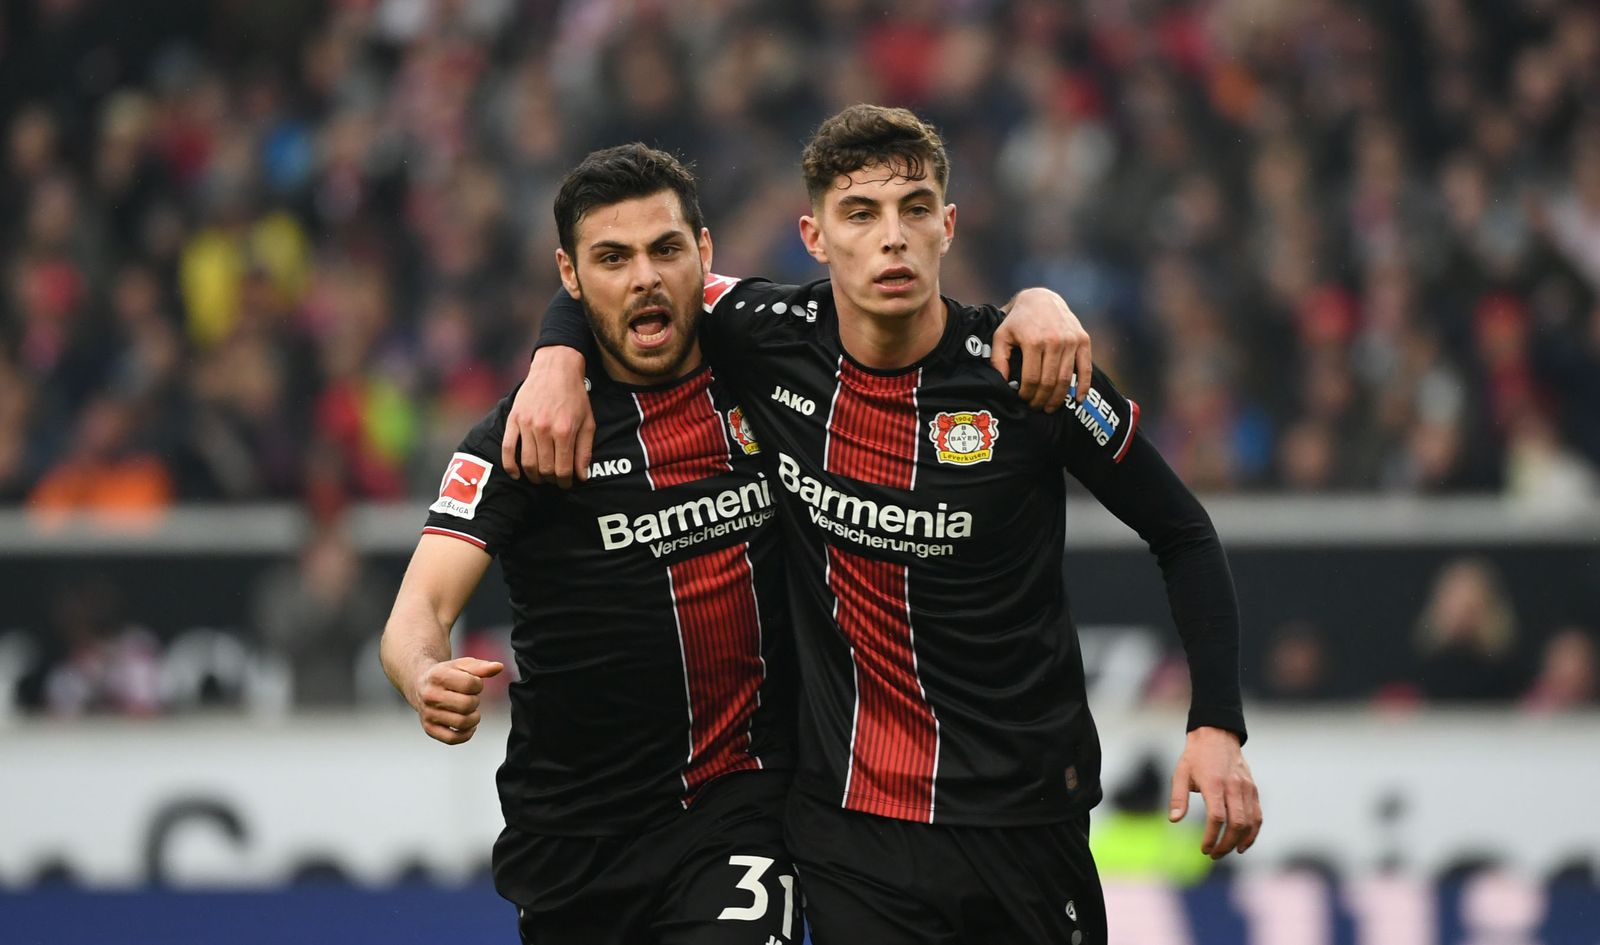 VfB Stuttgart - Bayer Leverkusen Havertz